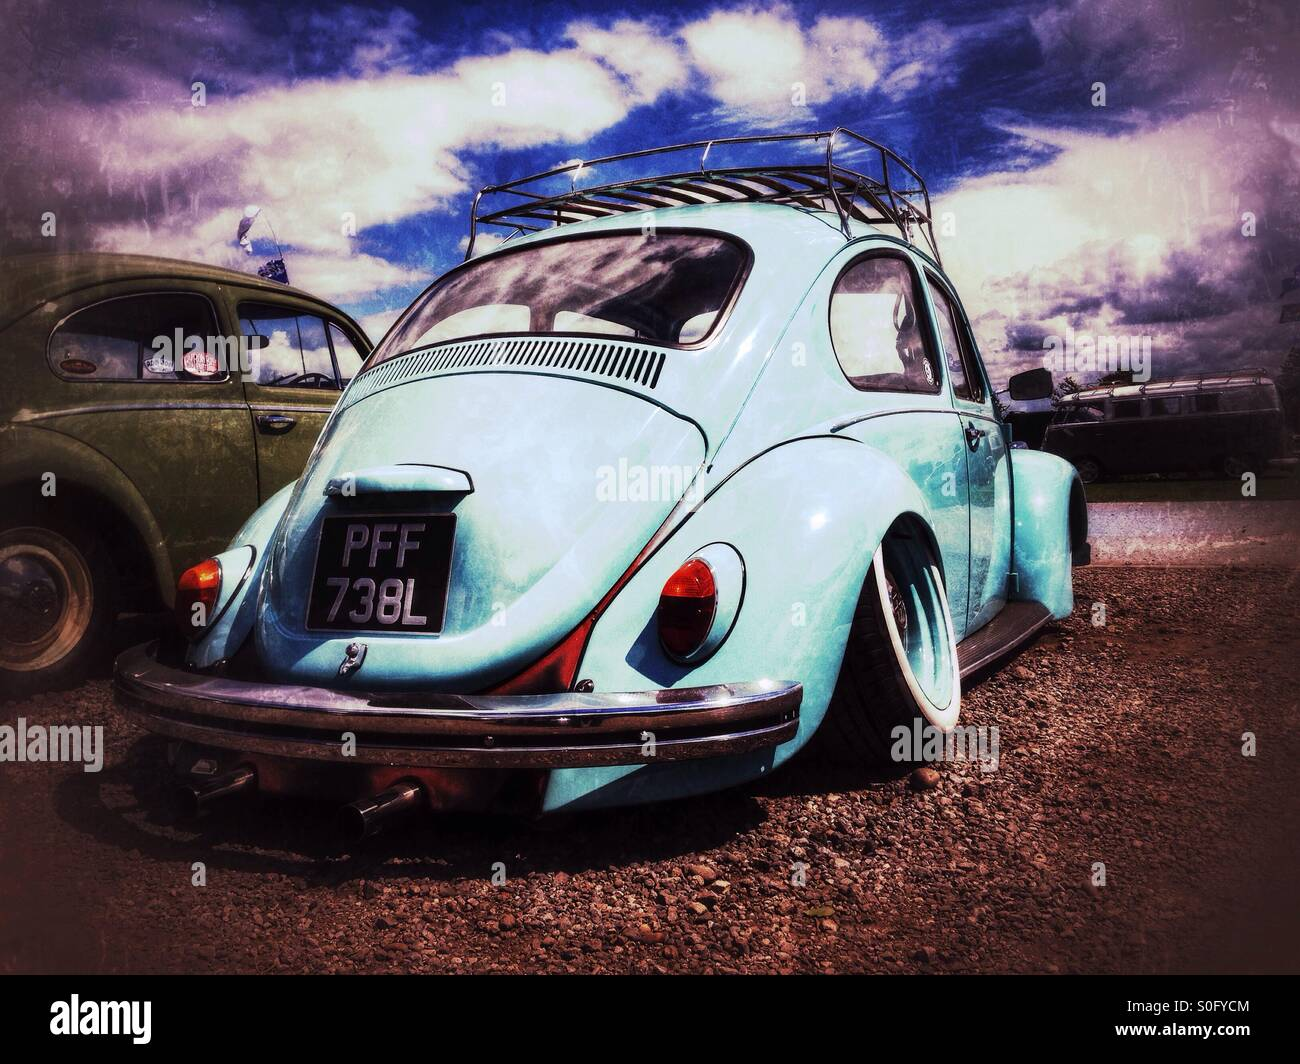 Classic VW Beetle with lowered suspension. - Stock Image